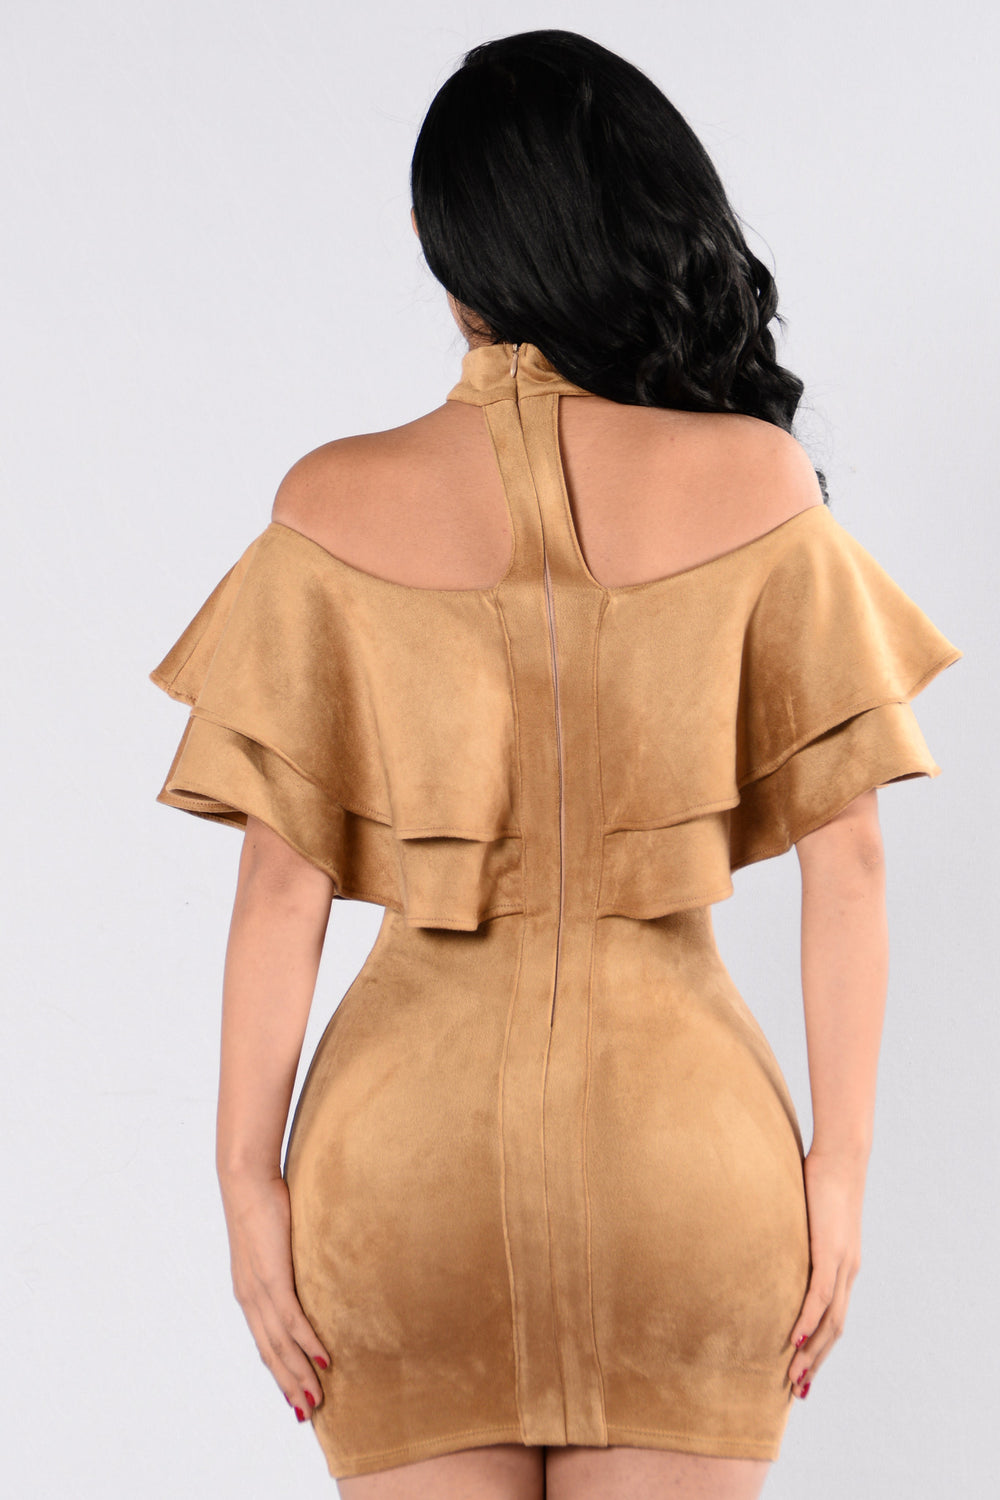 Crazy Little Thing Dress - Camel